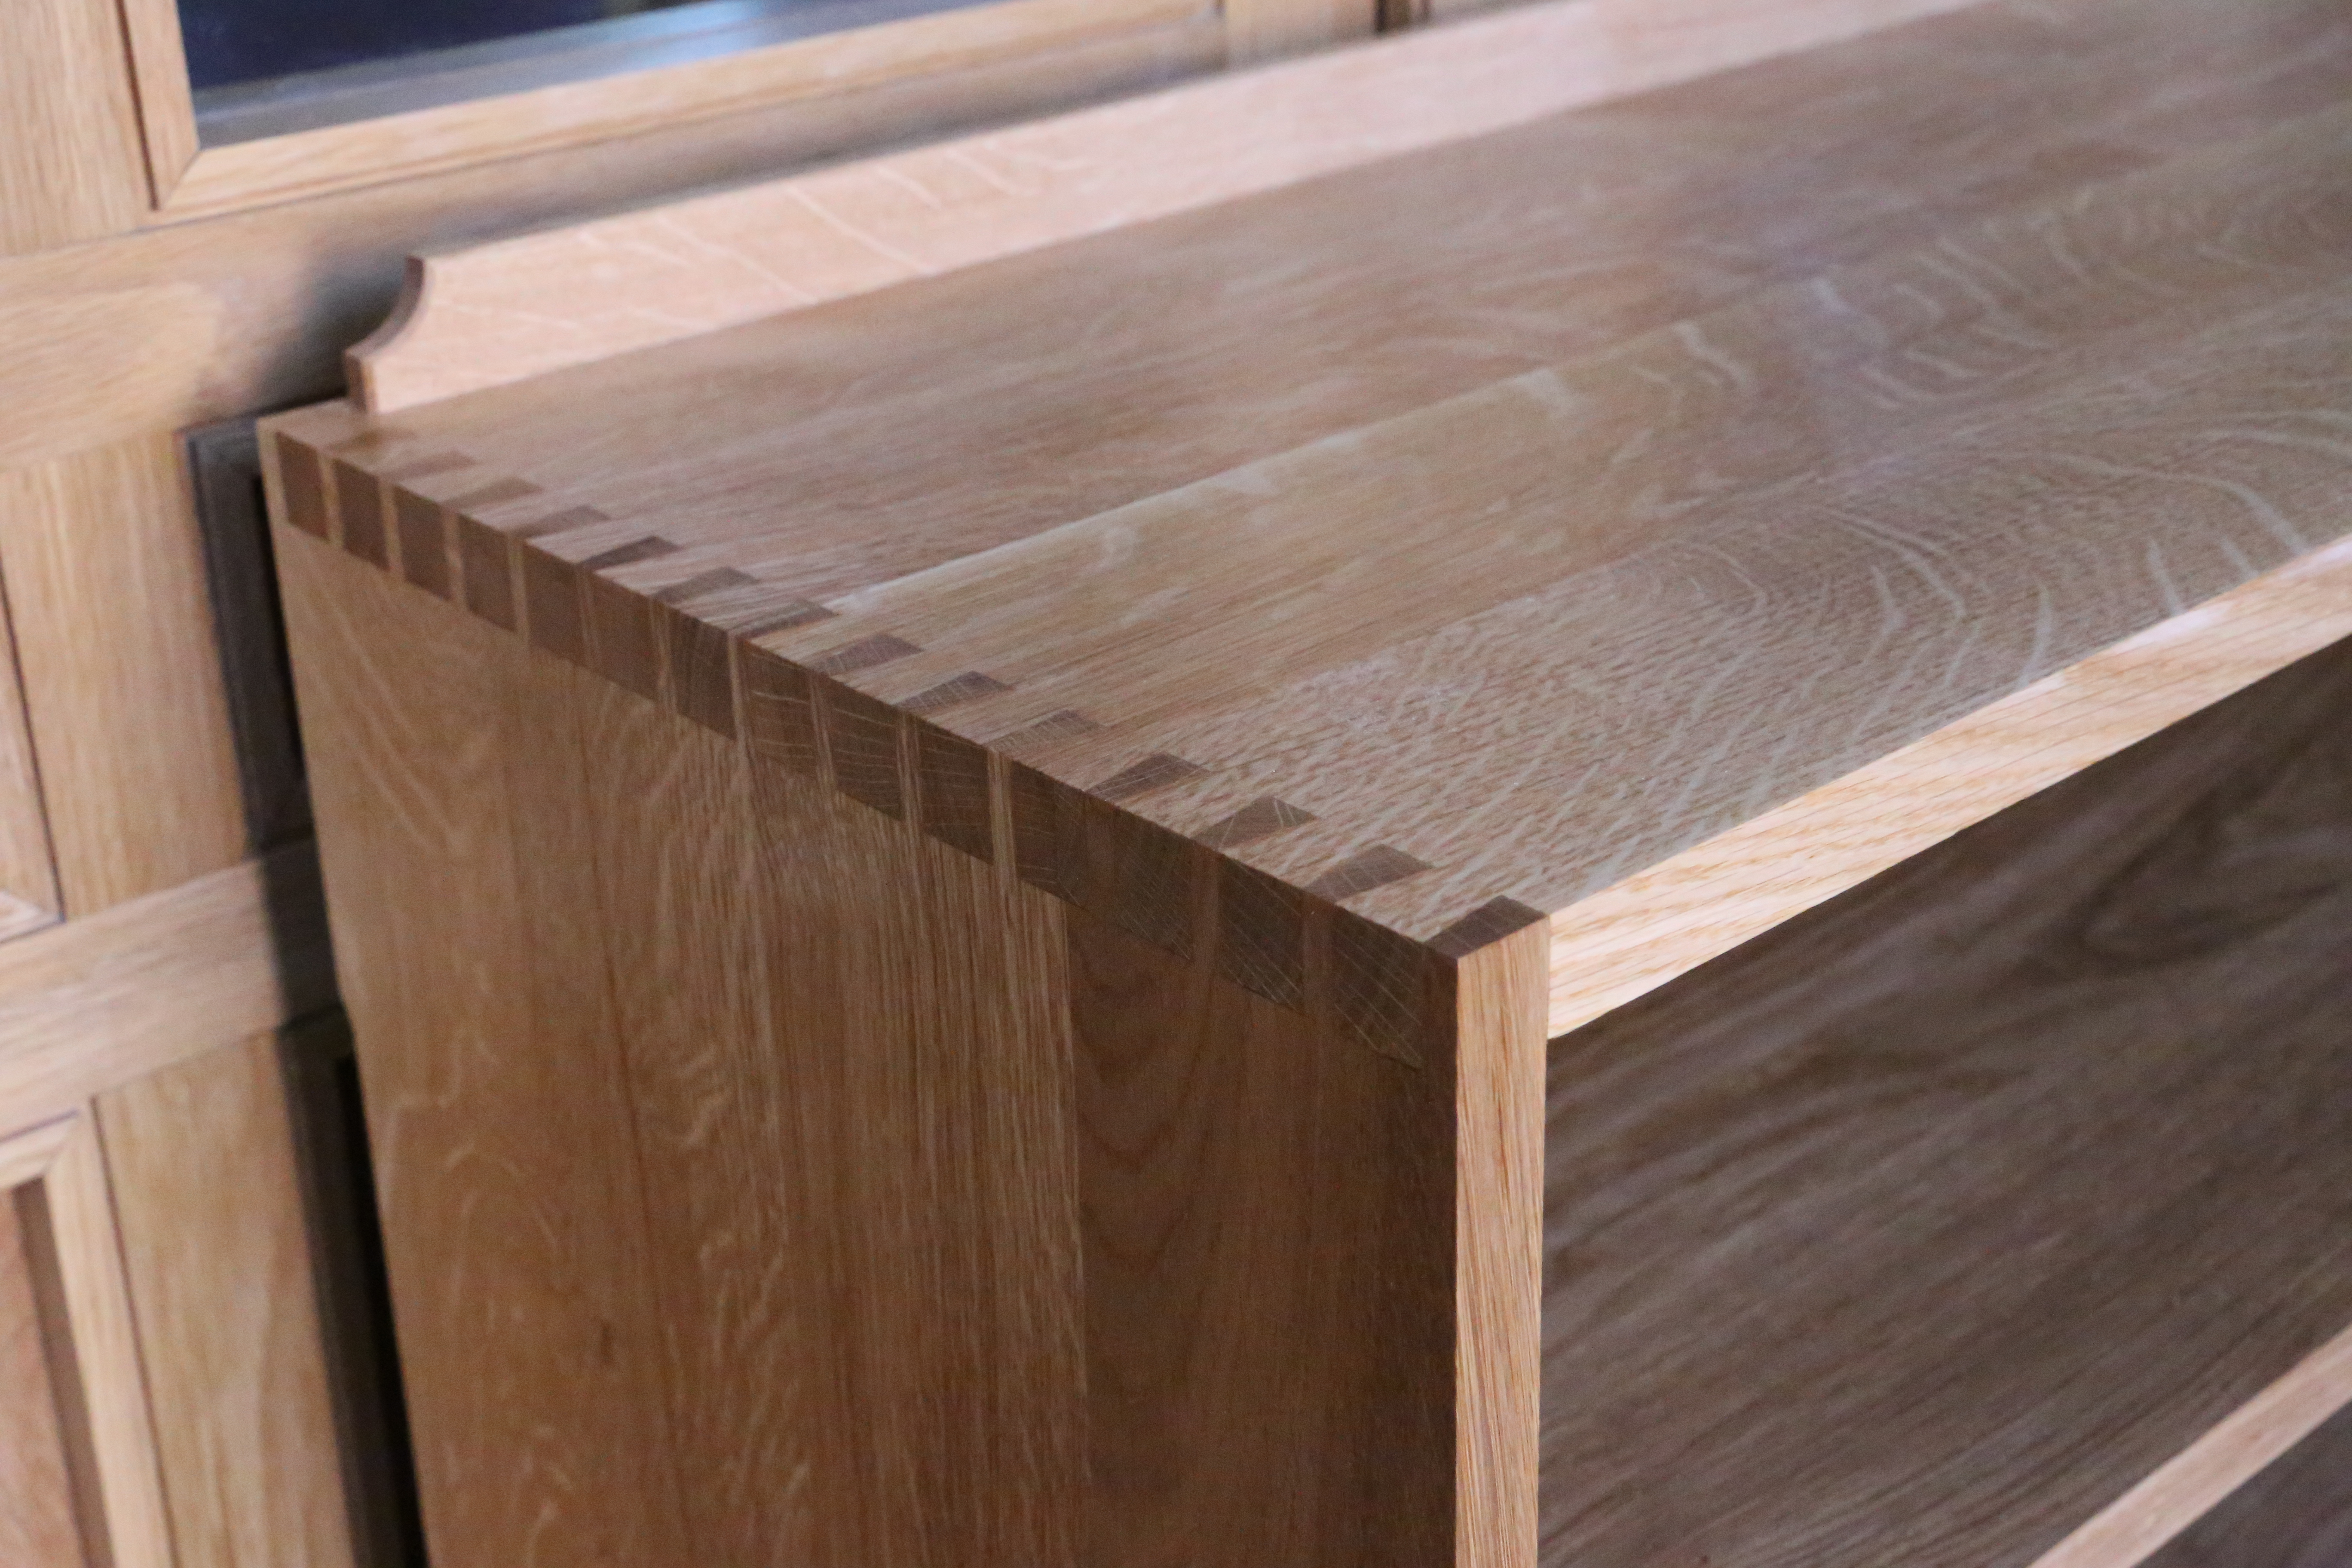 Solid Oak Cabinet Dovetail Construction Products In